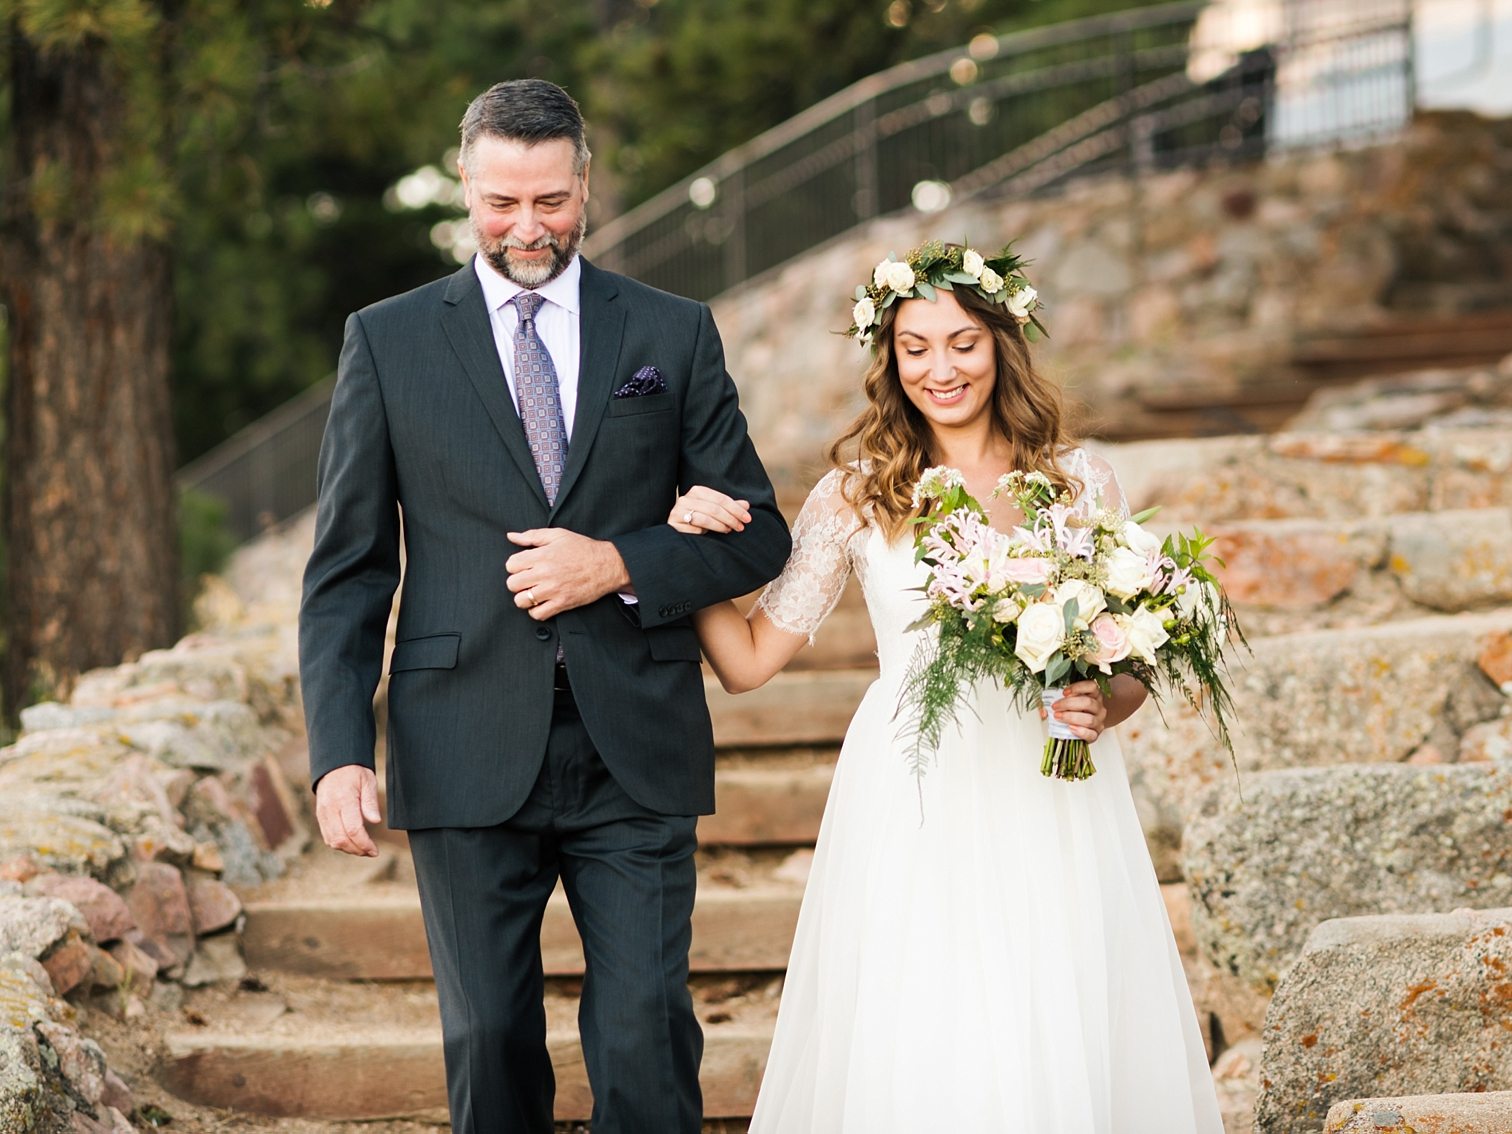 Mountain Weddings, Father Walking Bride Down Aisle, Flagstaff Mountain Wedding, Sunrise Amphitheater, Colorado Photographers, Best Destination Weddings, Danielle DeFiore Photography